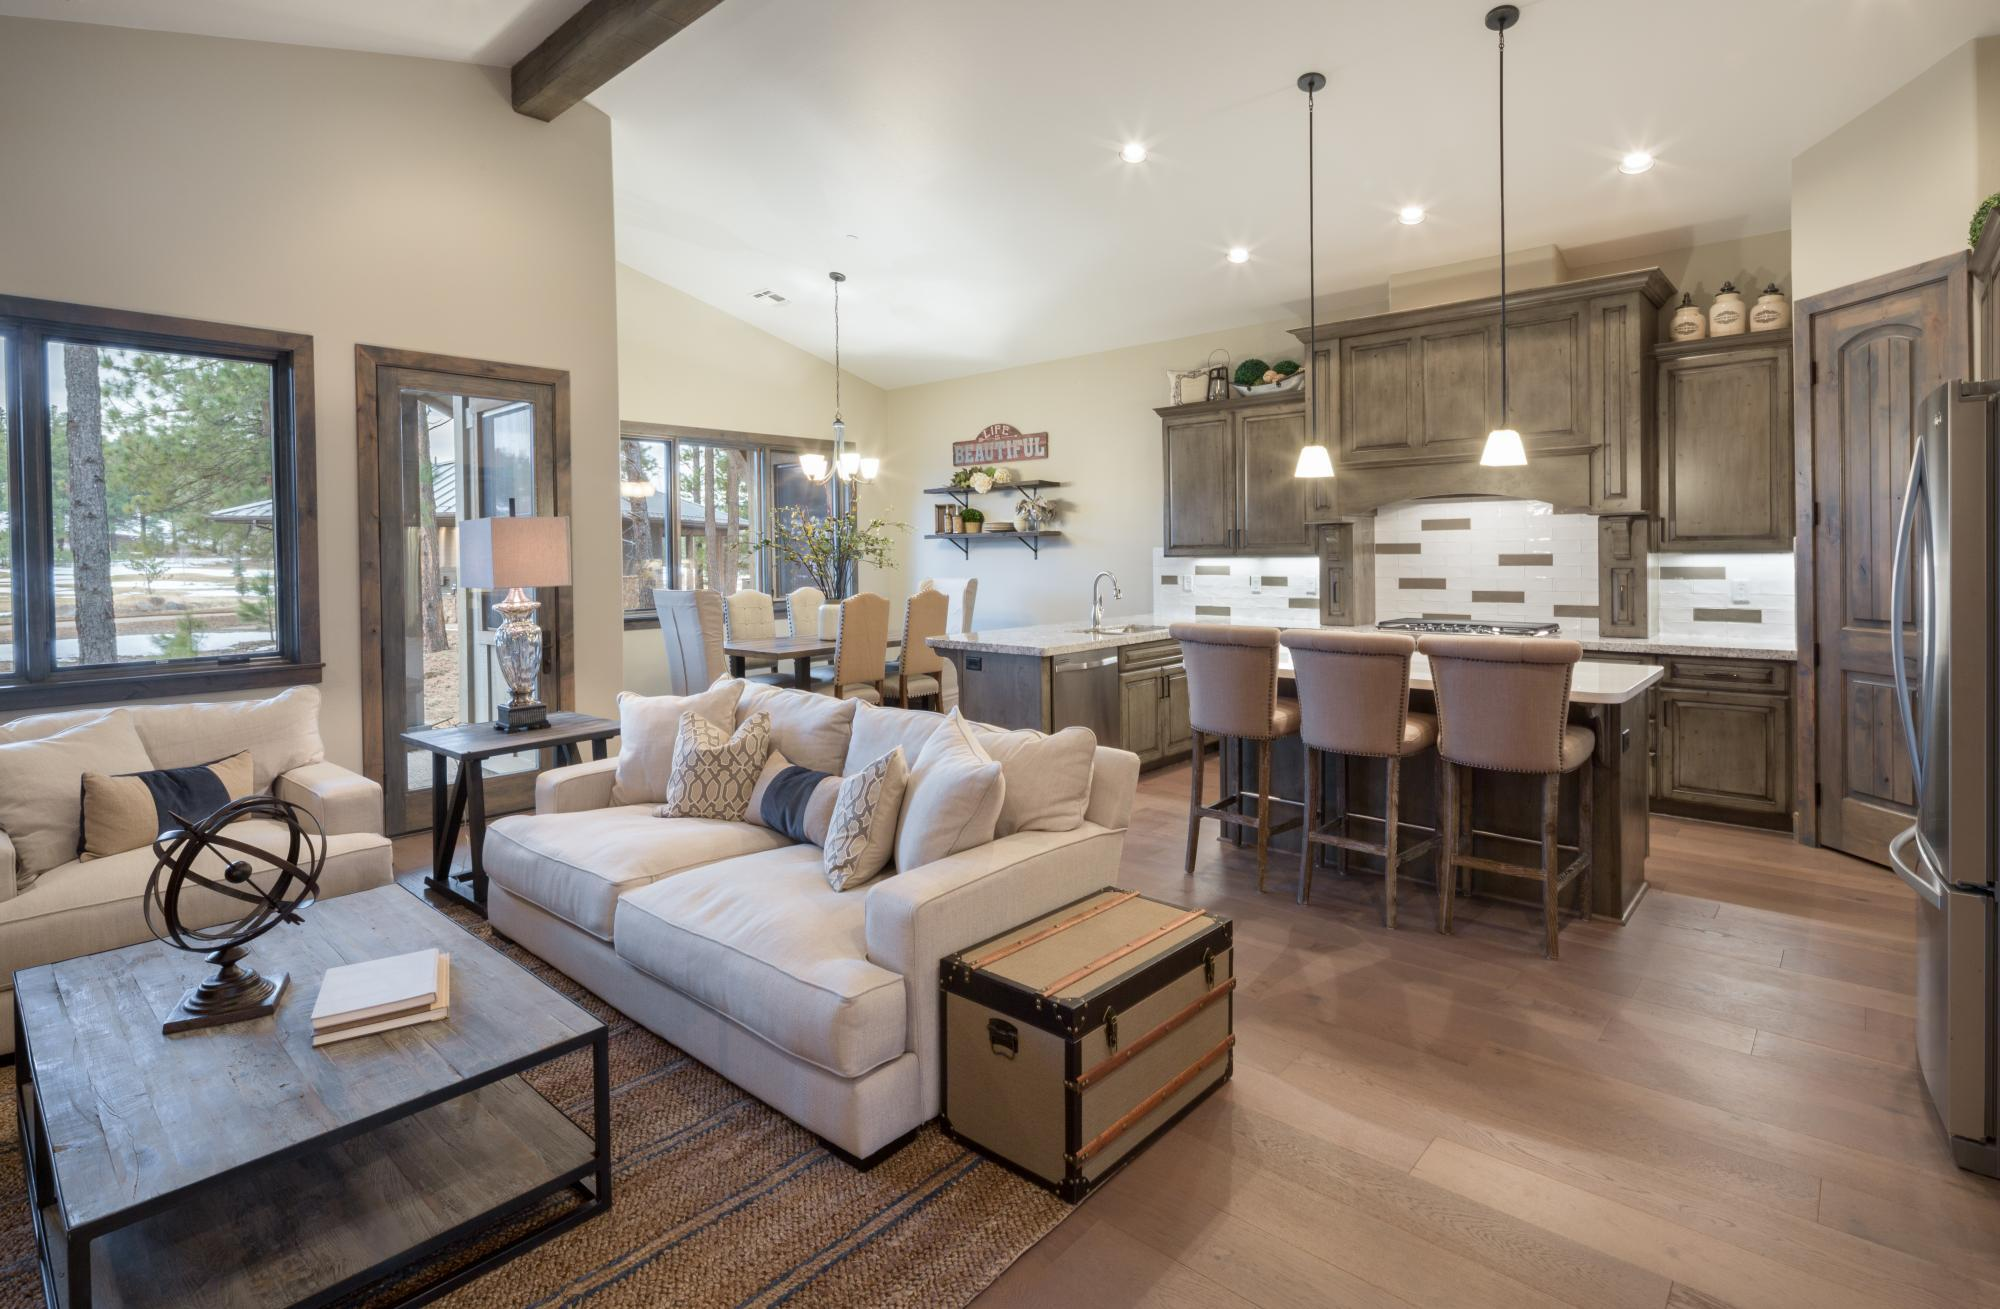 Living Area featured in the Aspen Shadows Plan 2308 By Capstone Homes in Flagstaff, AZ